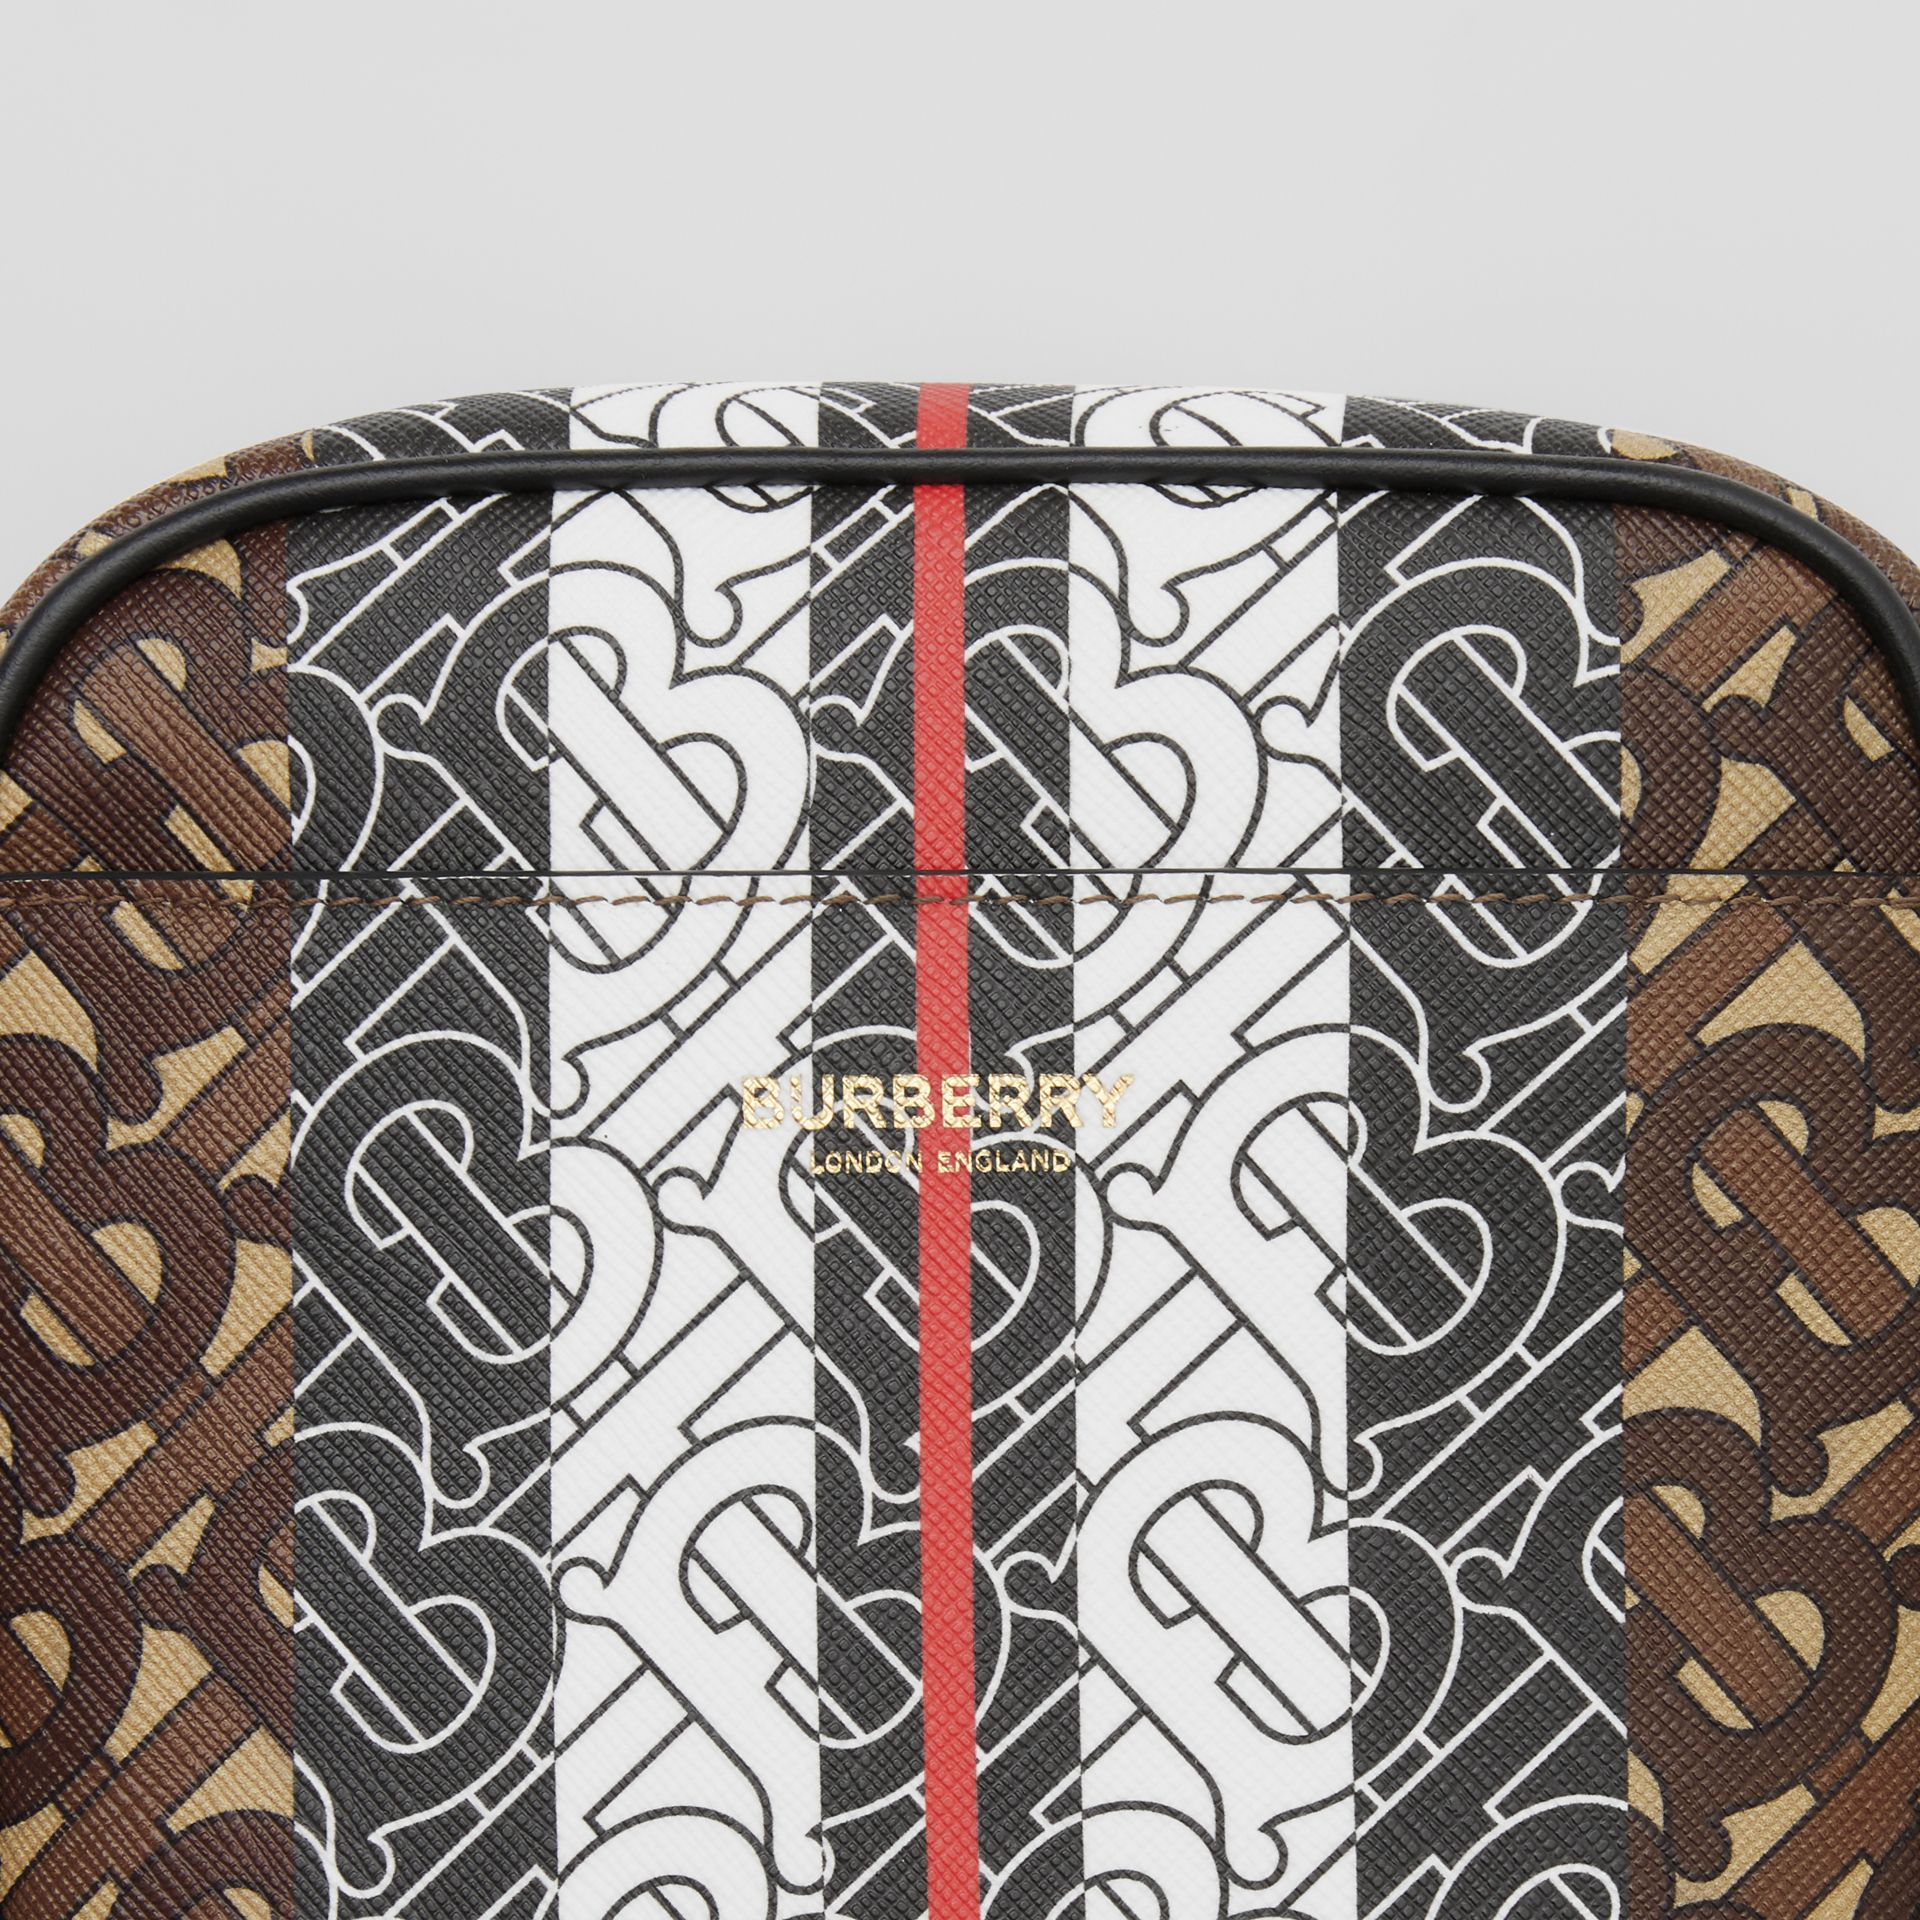 Monogram Stripe Print E-canvas Crossbody Bag in Bridle Brown - Men | Burberry United Kingdom - gallery image 1